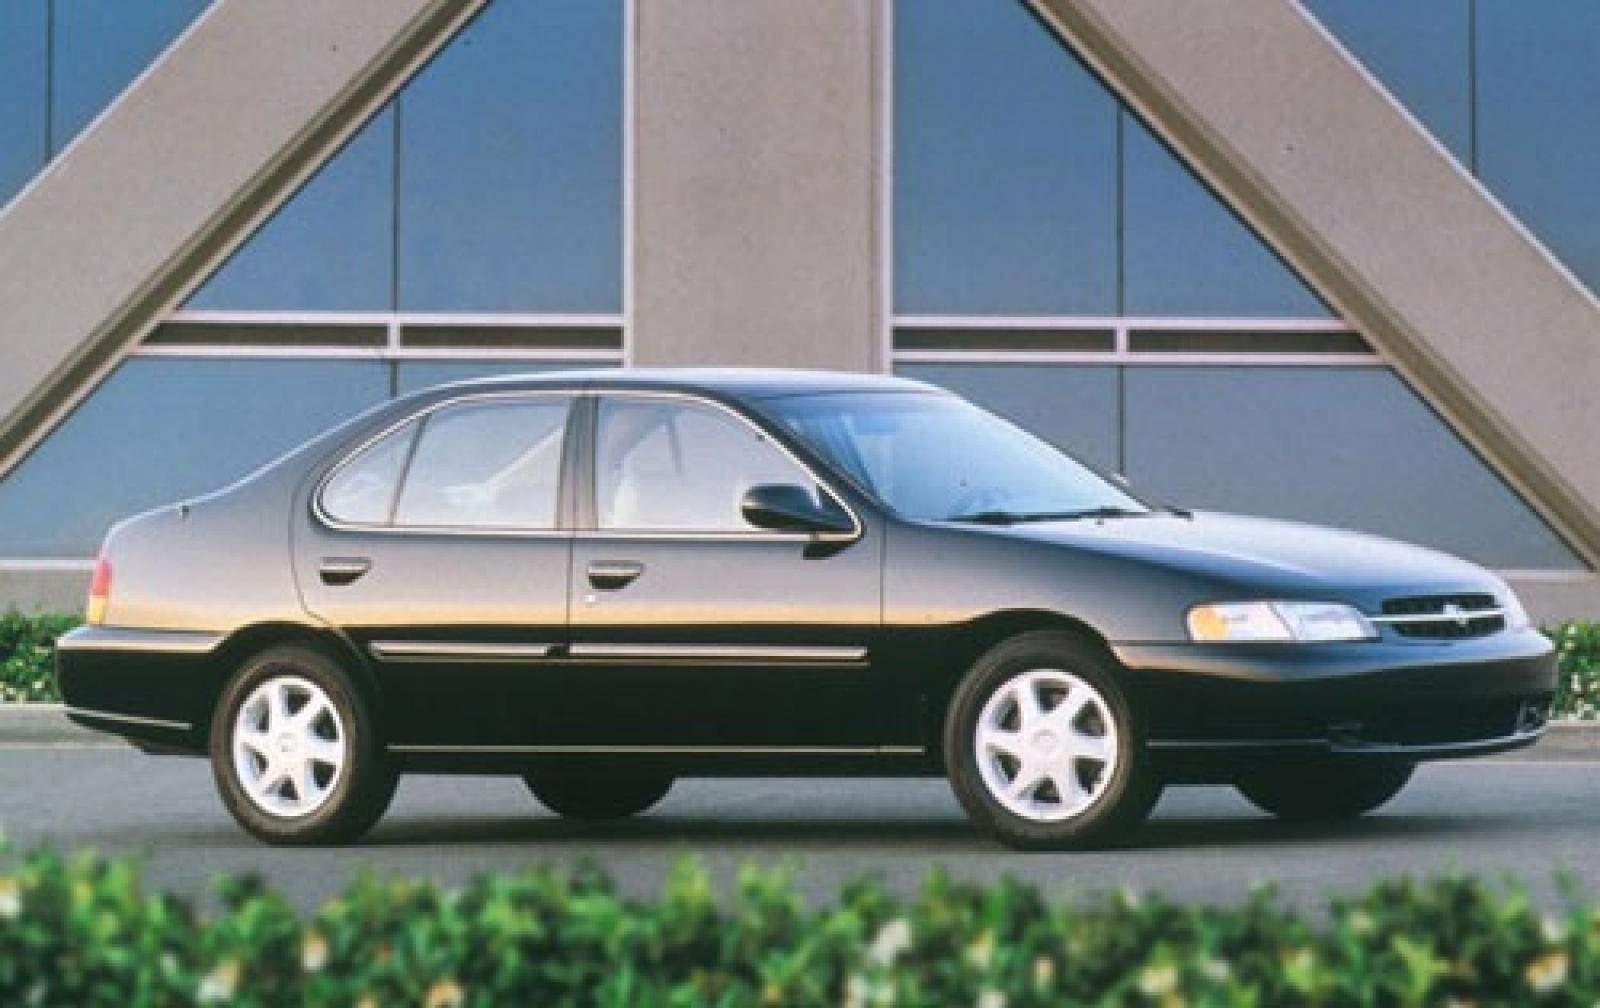 1999 Nissan Altima Information And Photos Zombiedrive 1998 Gxe 800 1024 1280 1600 Origin